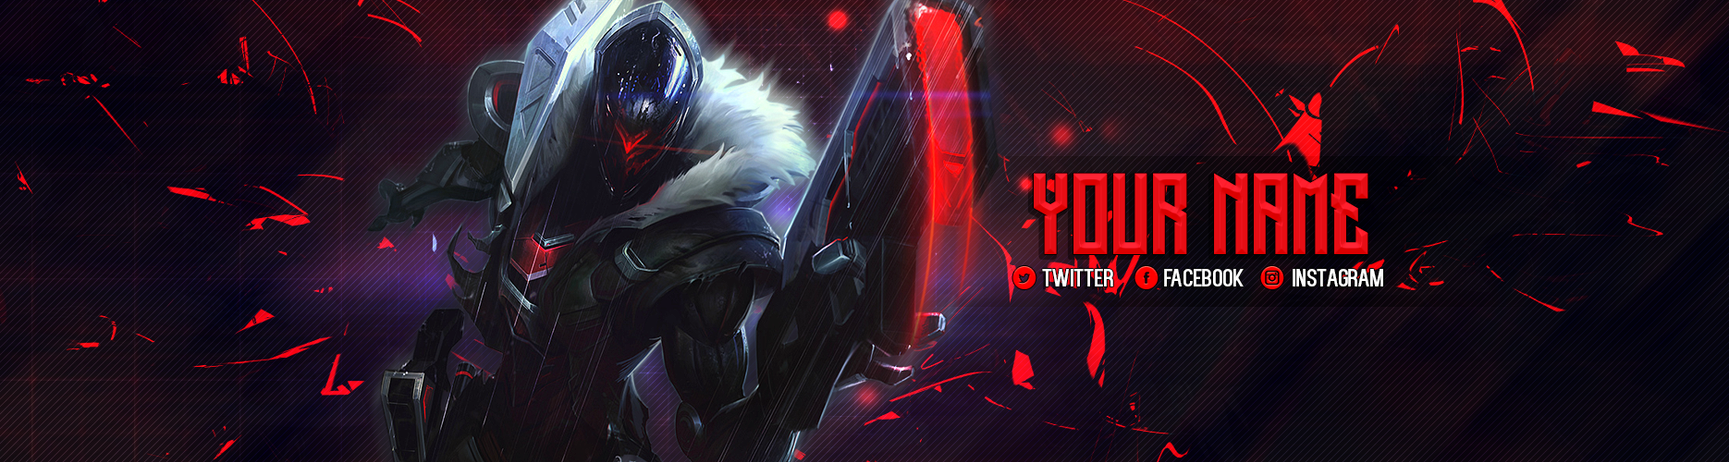 Lol Project Jhin Twitch Banner By Psychomilla On Deviantart